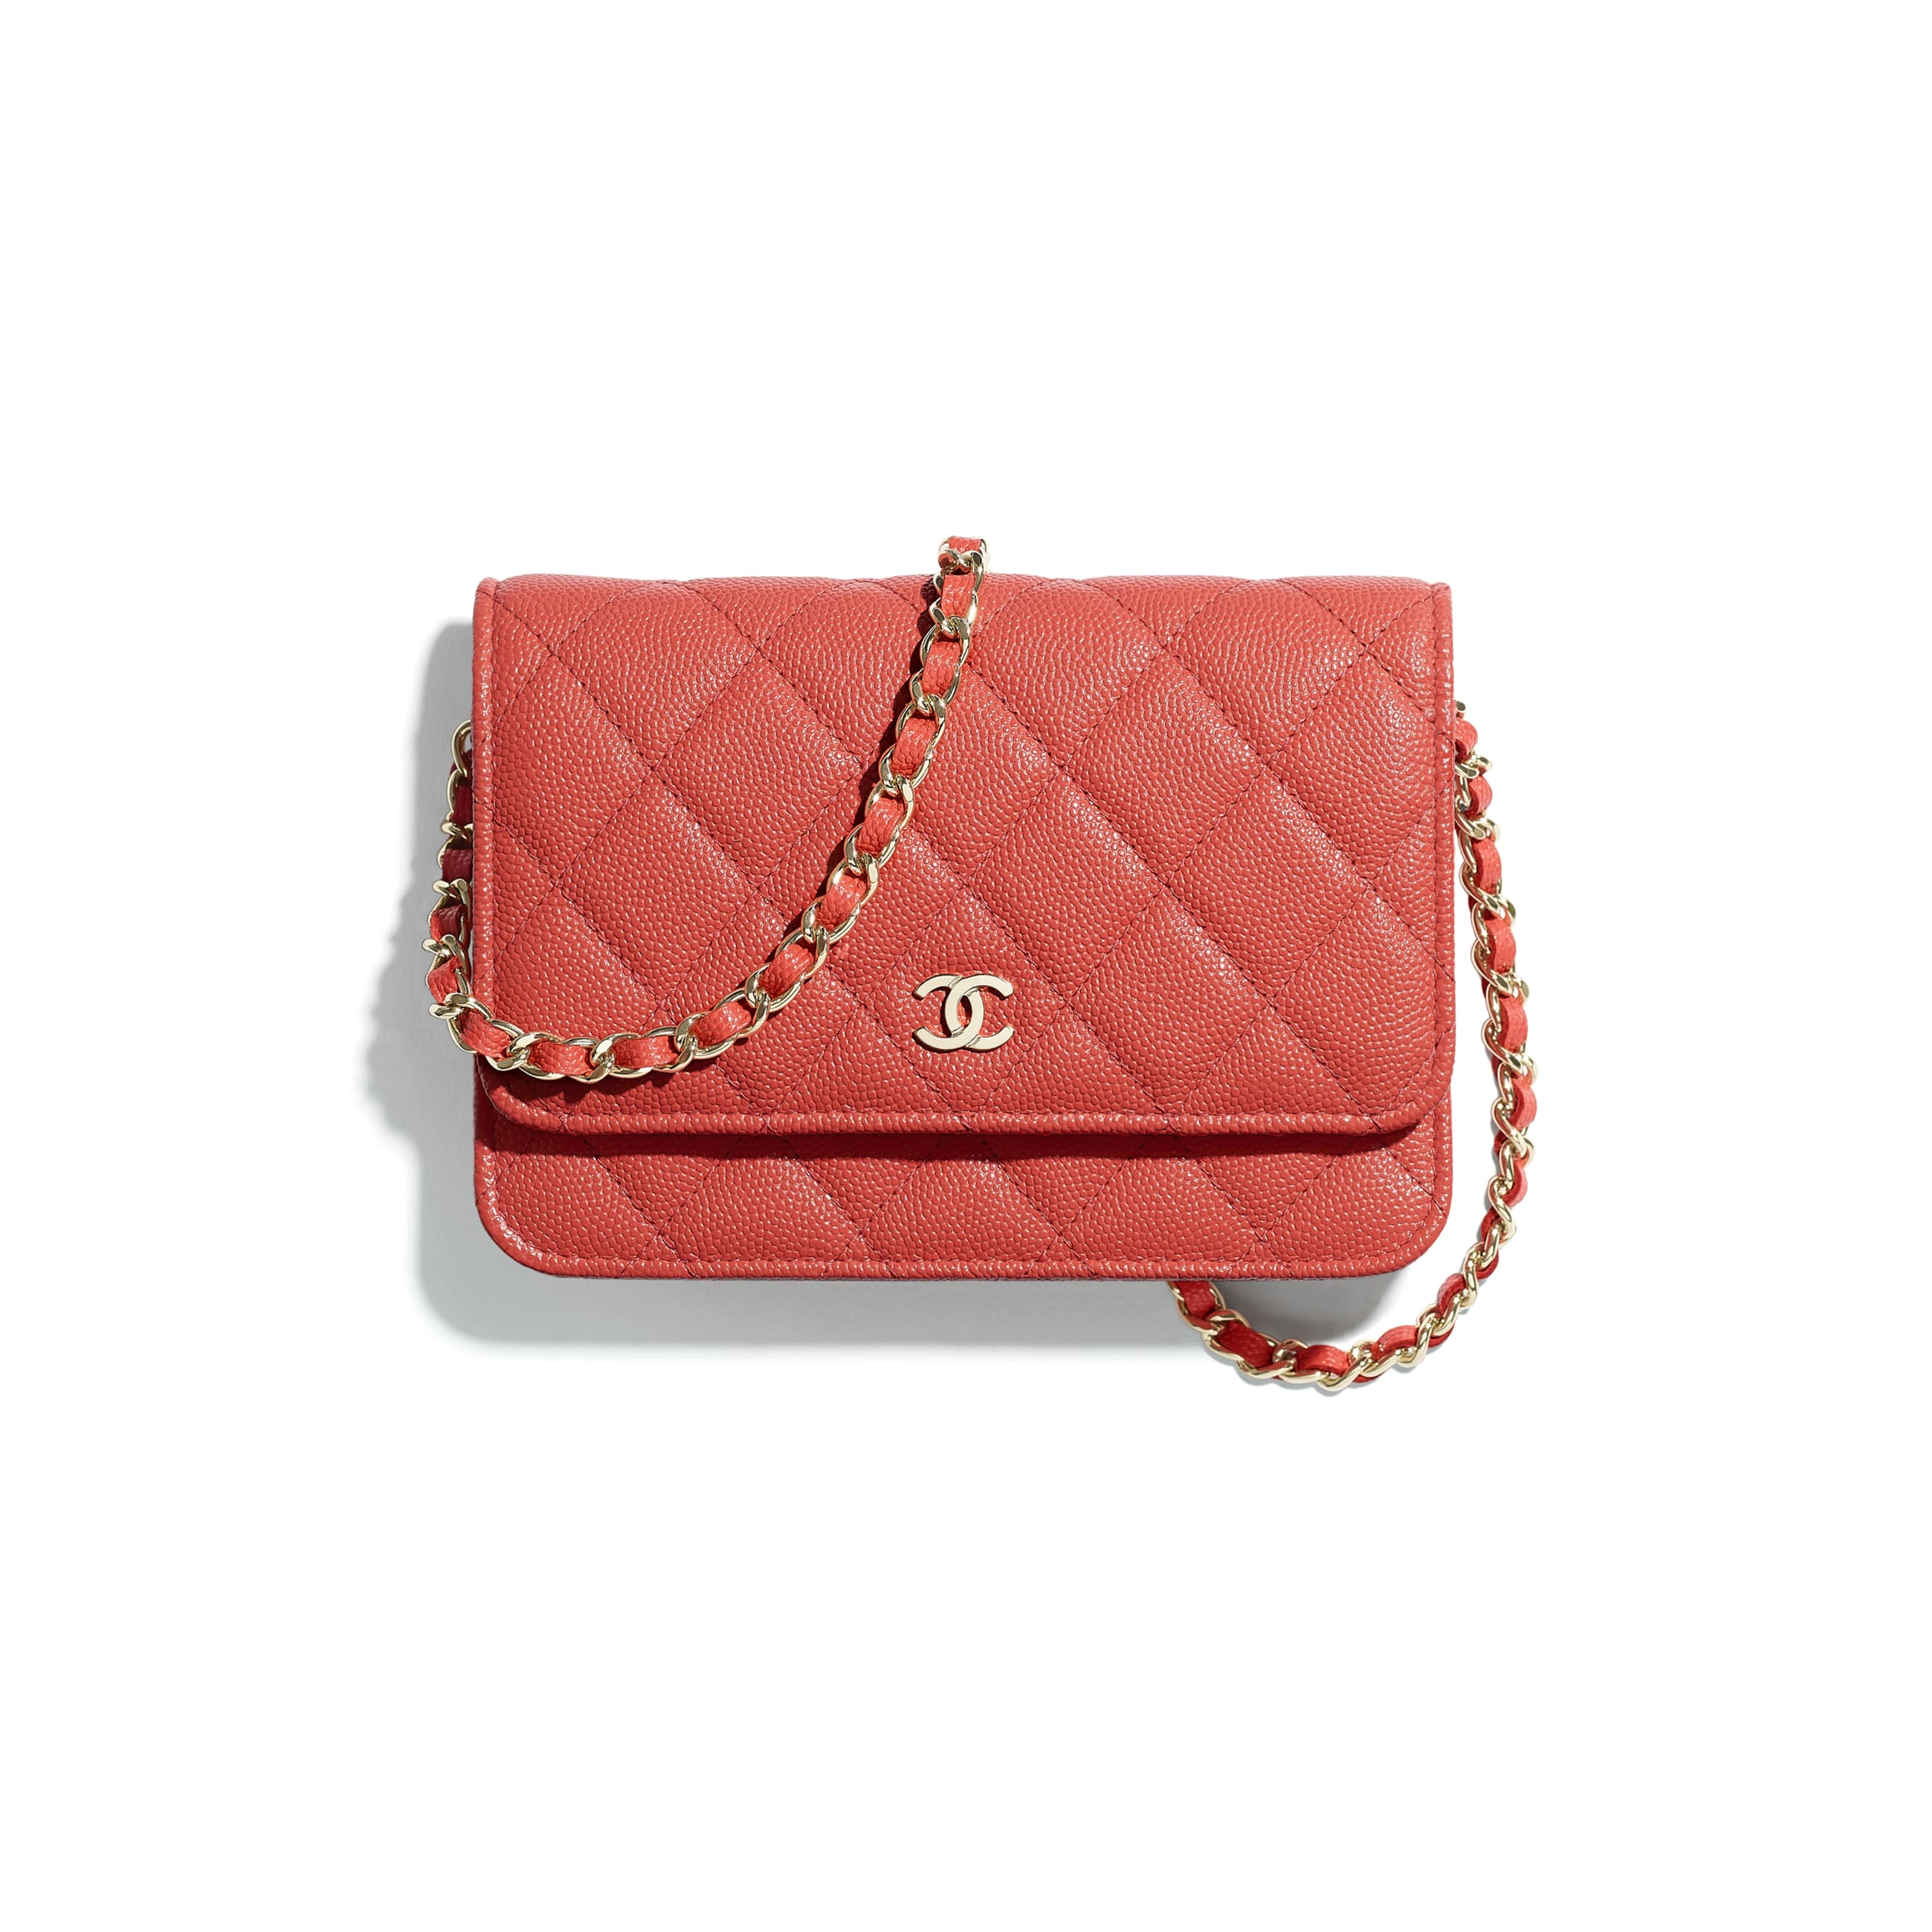 Mini Wallet on Chain - Red - Grained Calfskin & Gold-Tone Metal - CHANEL - Default view - see standard sized version